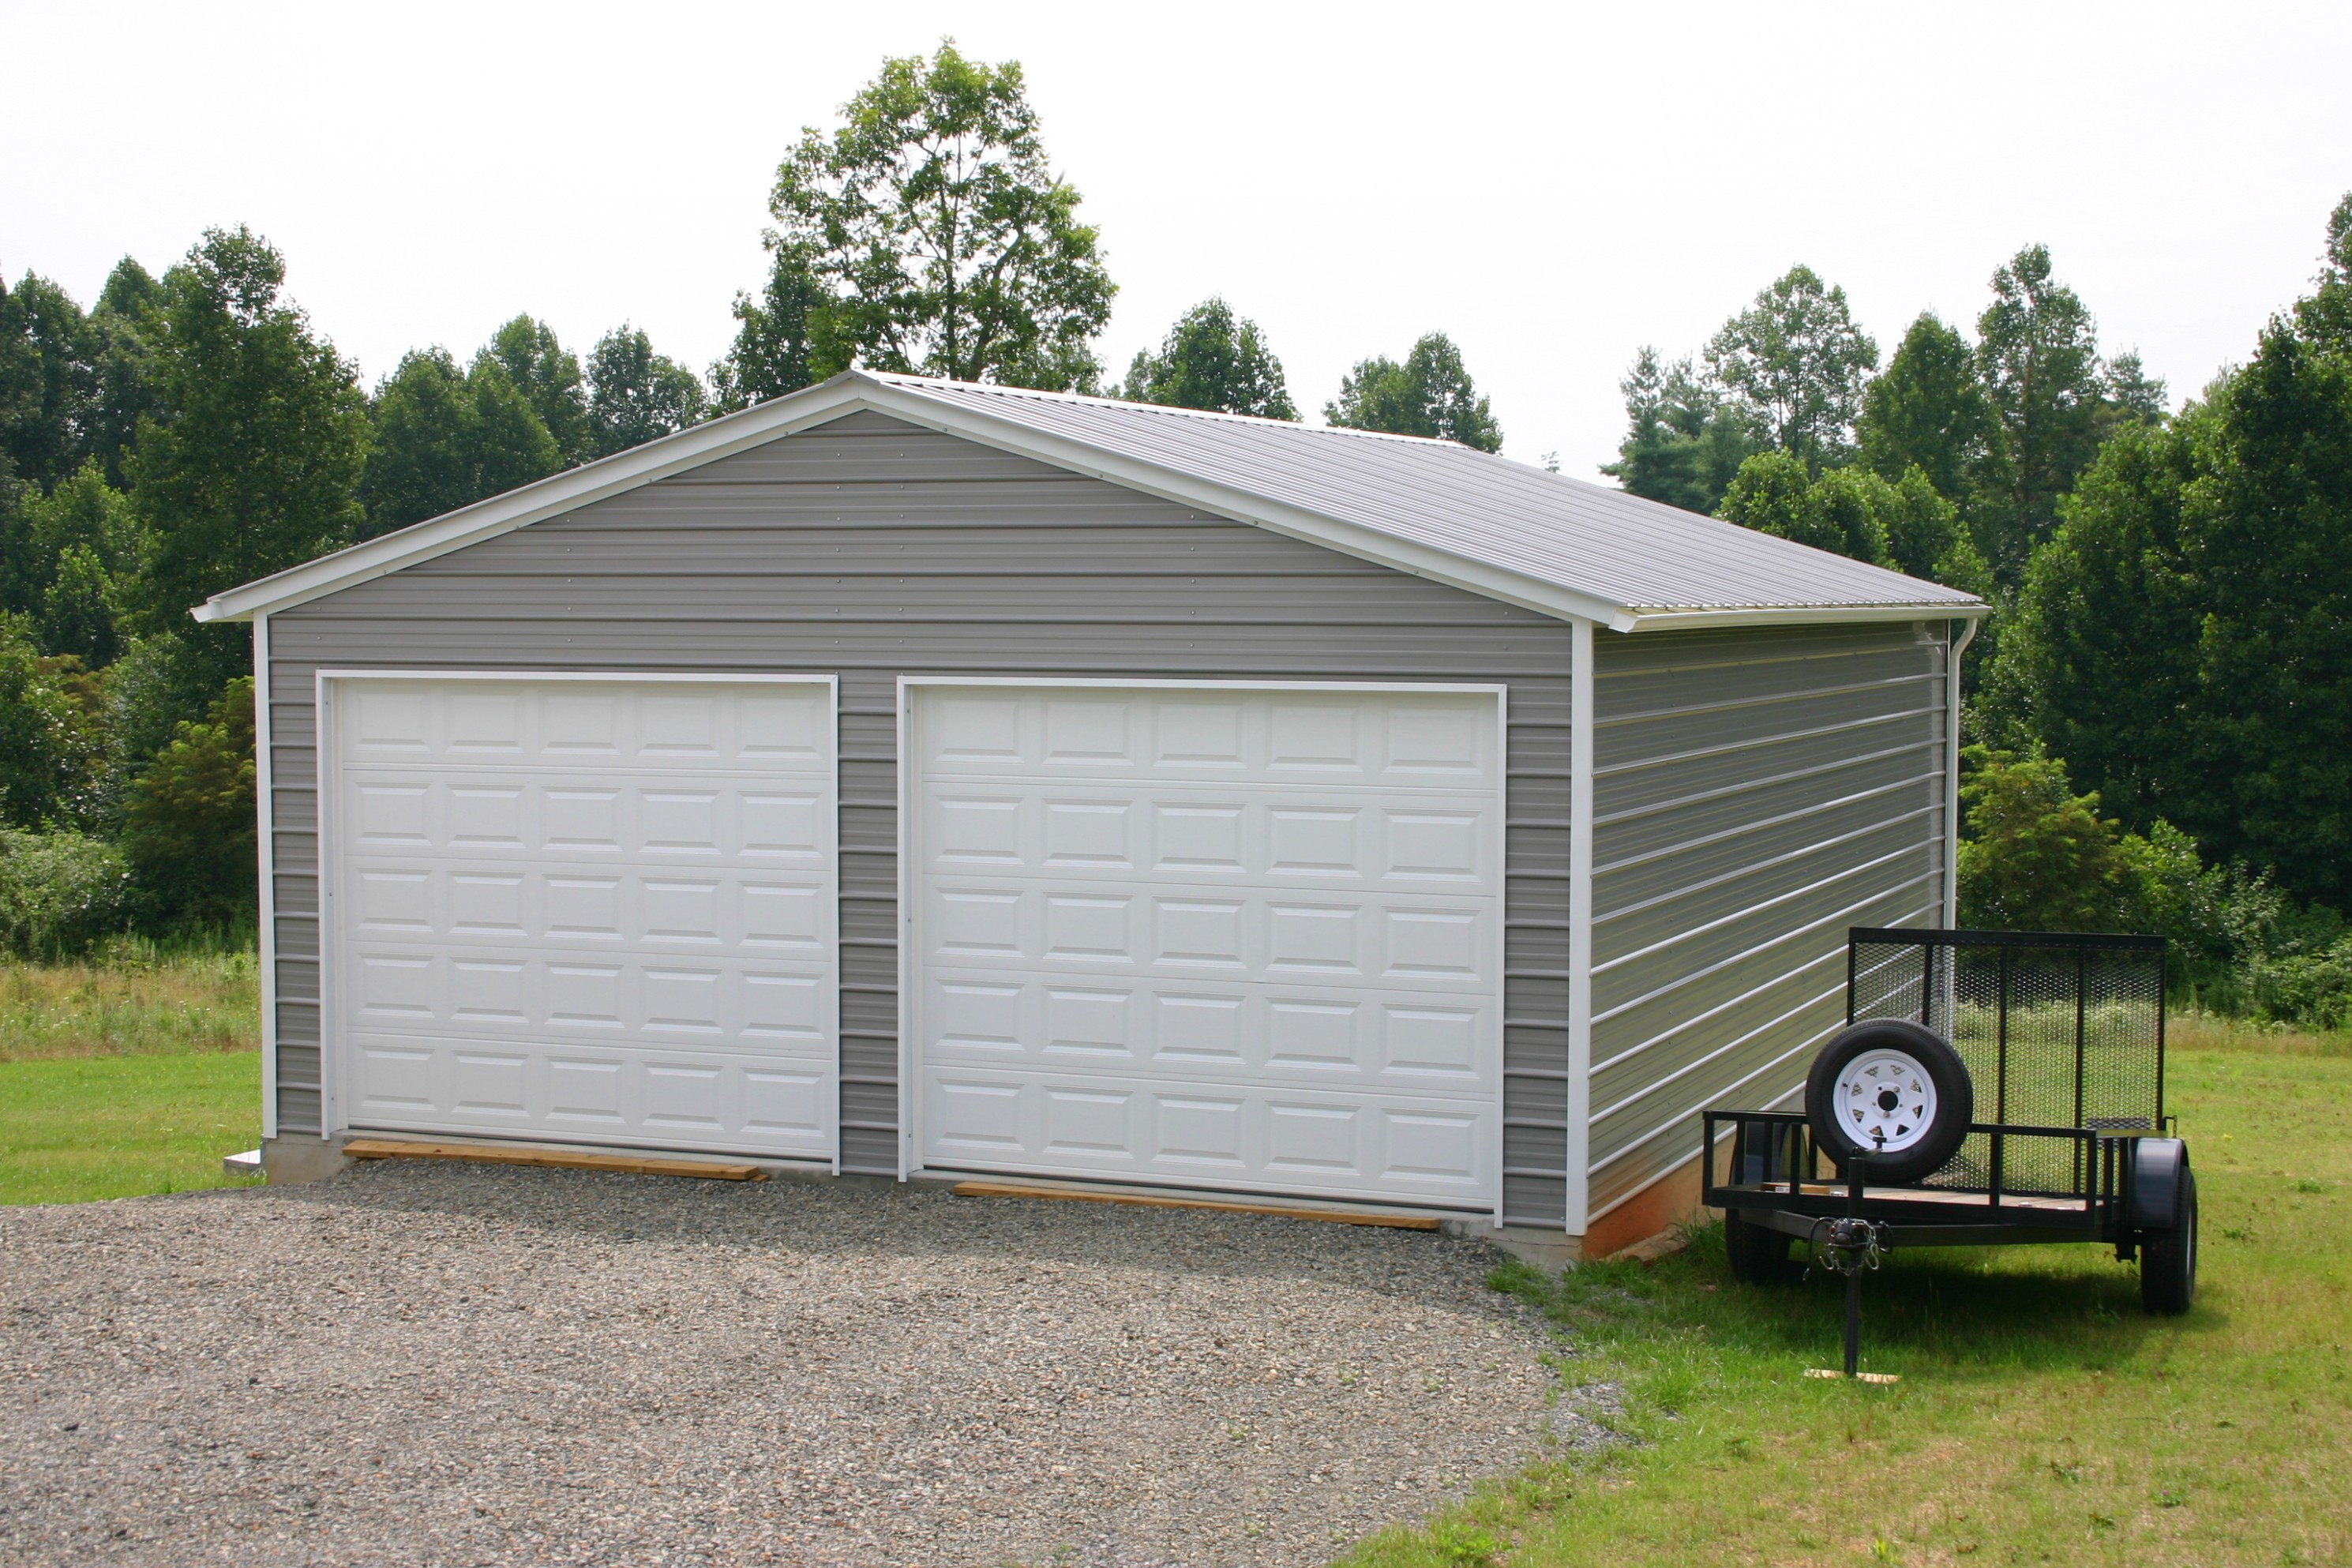 1517629531-local-carports-for-sale-neaucomic-com-small-metal-carports-for-sale.jpg